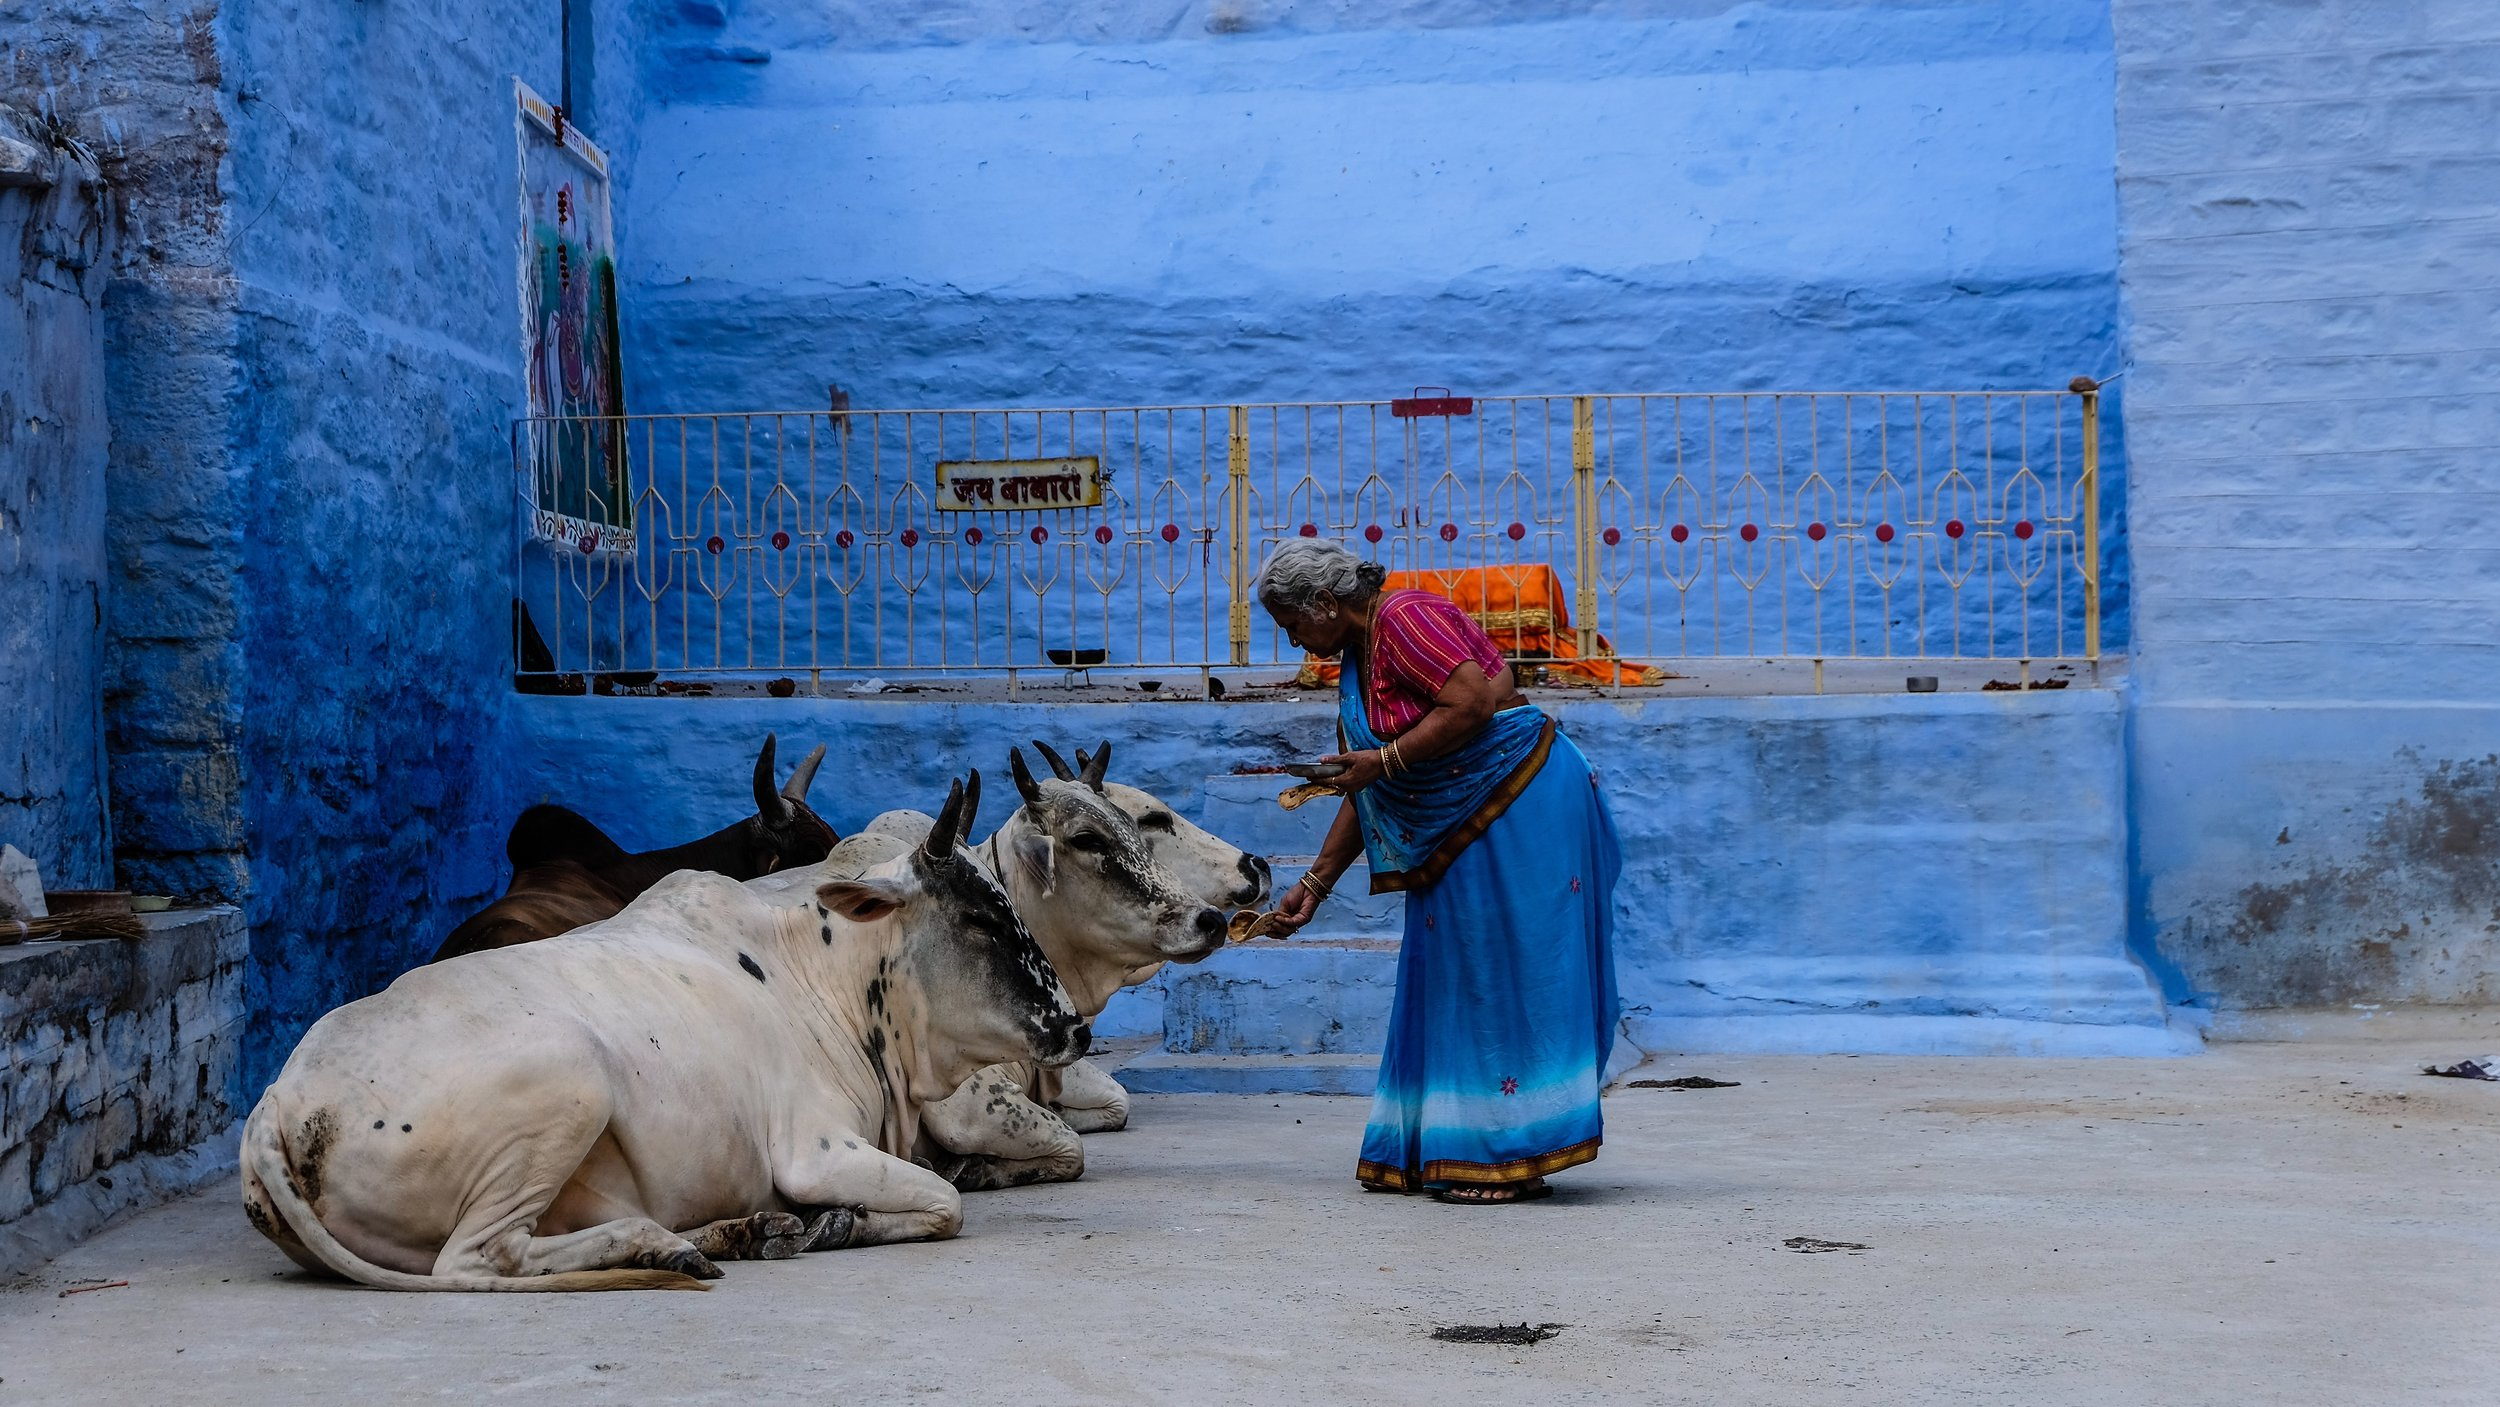 A woman feeds zebu cows in India. Photo courtesy of Monthaye.